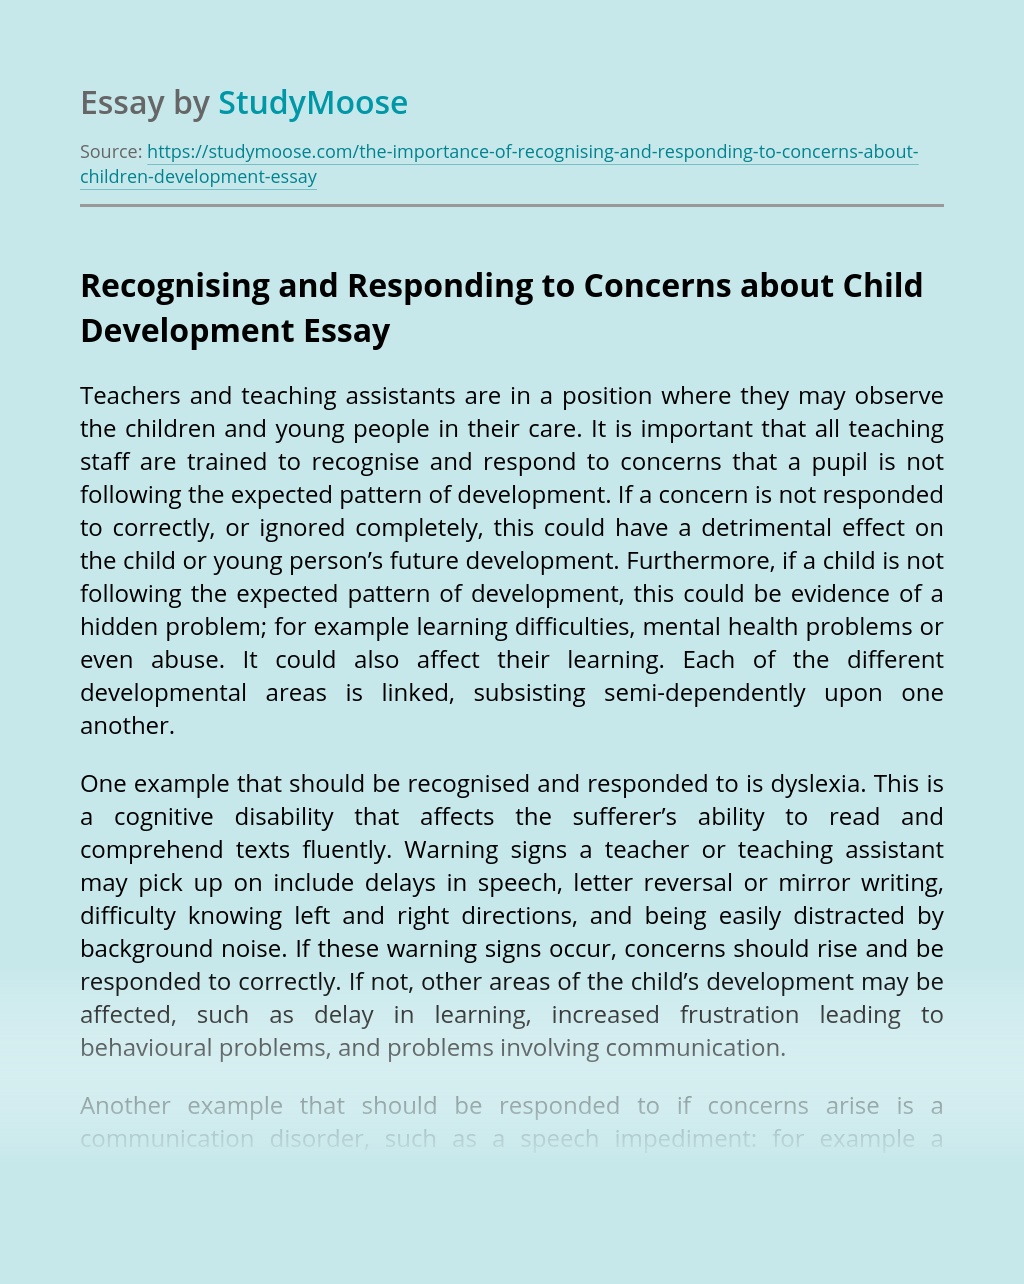 Recognising and Responding to Concerns about Child Development